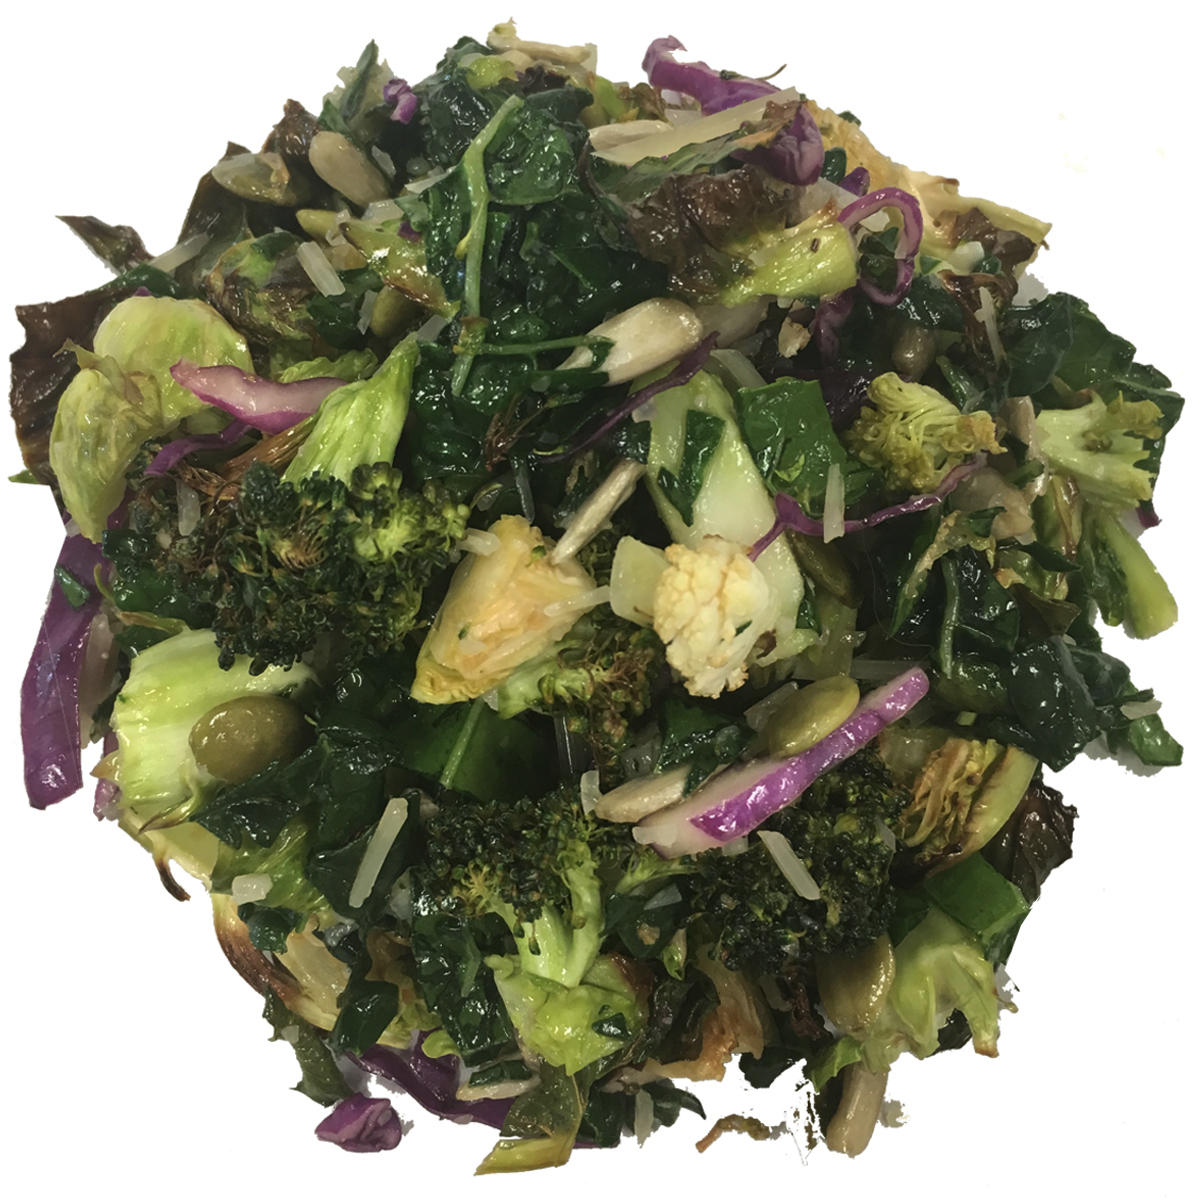 Roasted Cruciferous Slaw - A relatively low carbohydrate option for those related diets. To make it lower in sugar ... just request olive oil only dressing! This salad is loaded with cruciferous veggies for tons of soluable fiber (the antidote for cholesterol) and anti-oxidents for an overall health boost. All of the ingredients are gluten free. We roast our veggies for extra flavor and to give your chompers a bit of a rest.Dressing: enfuso white raspberry pear balsamic vinegar and lemon olive oilCalories per Serving: 140Price/lb: $10.00